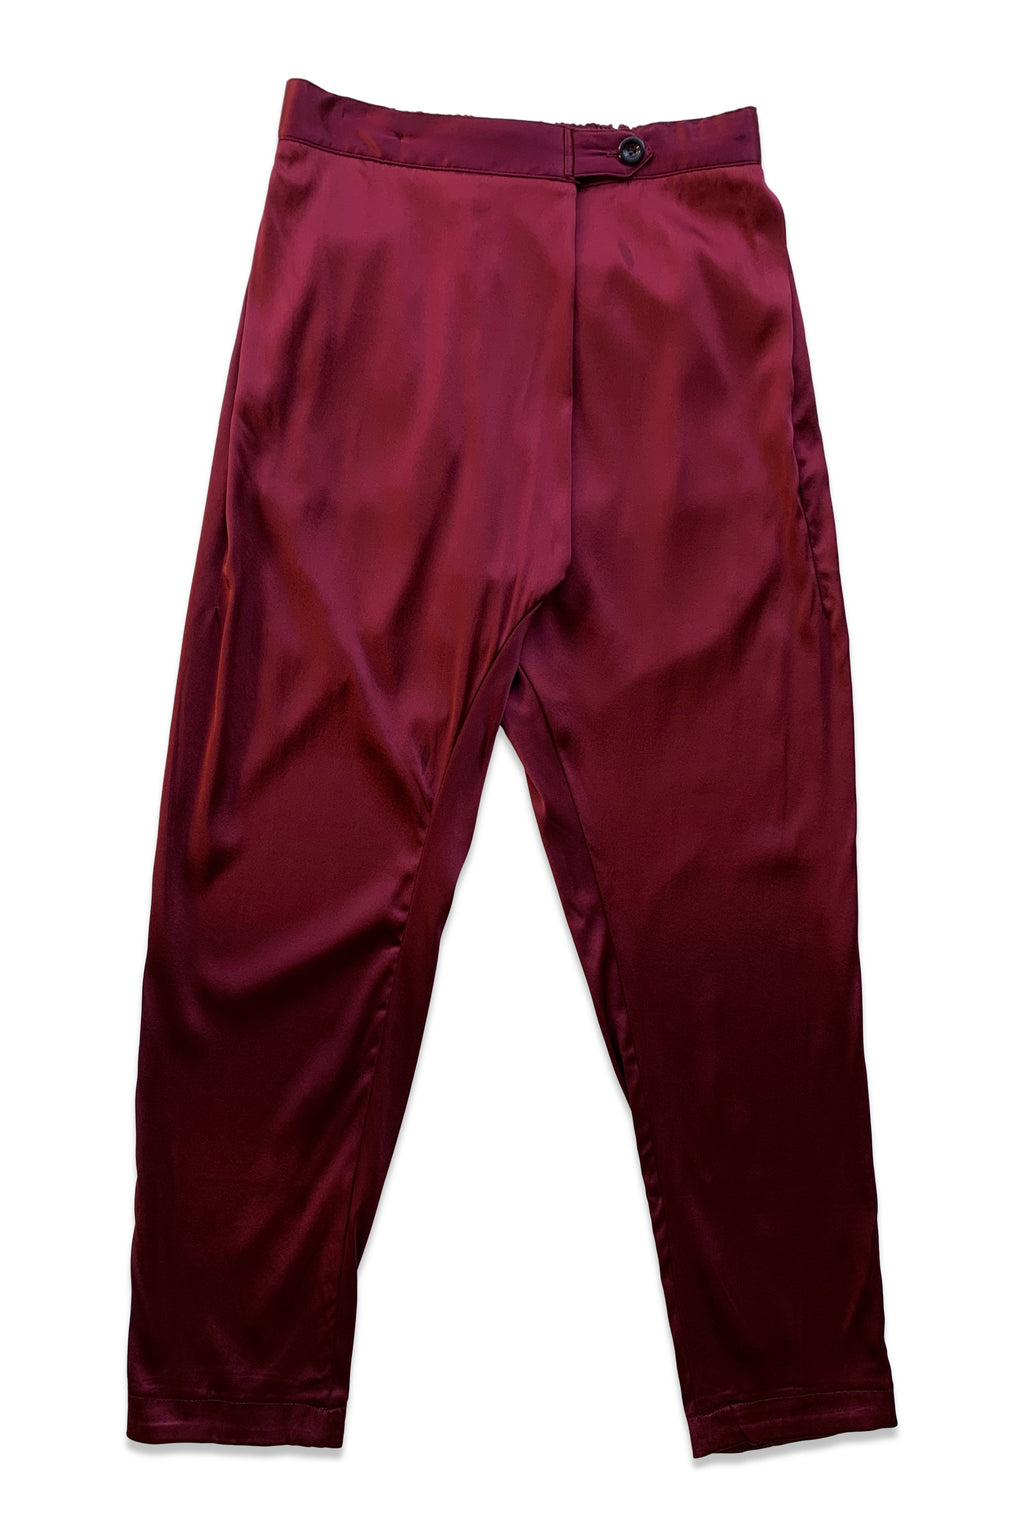 Souk Silk Pant in Oxblood